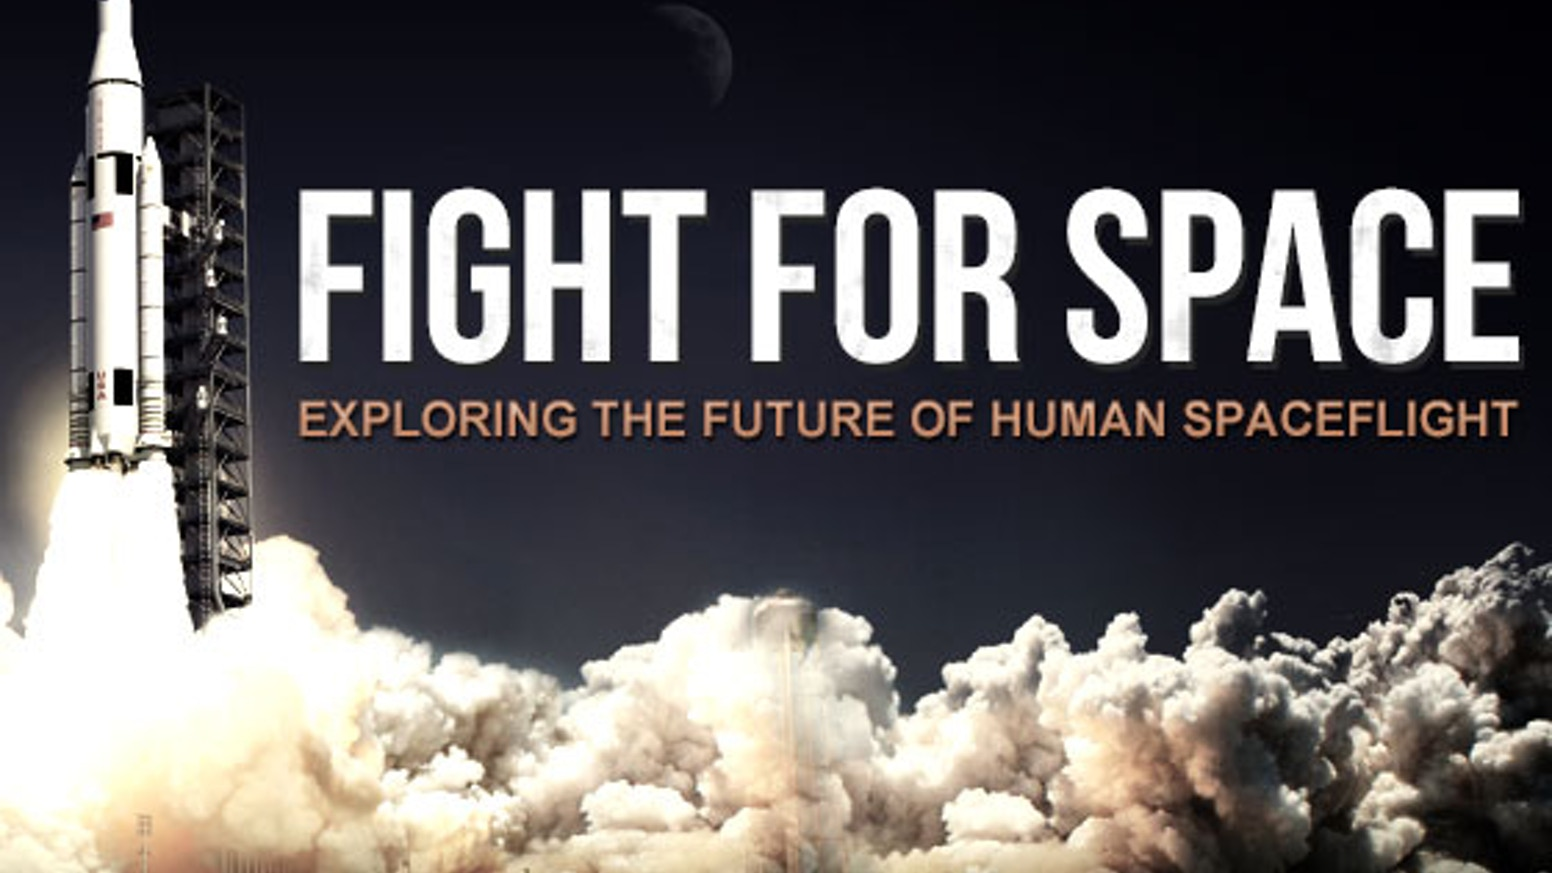 We are creating a documentary on the future of the space program. Help discover what is really going on with space exploration.